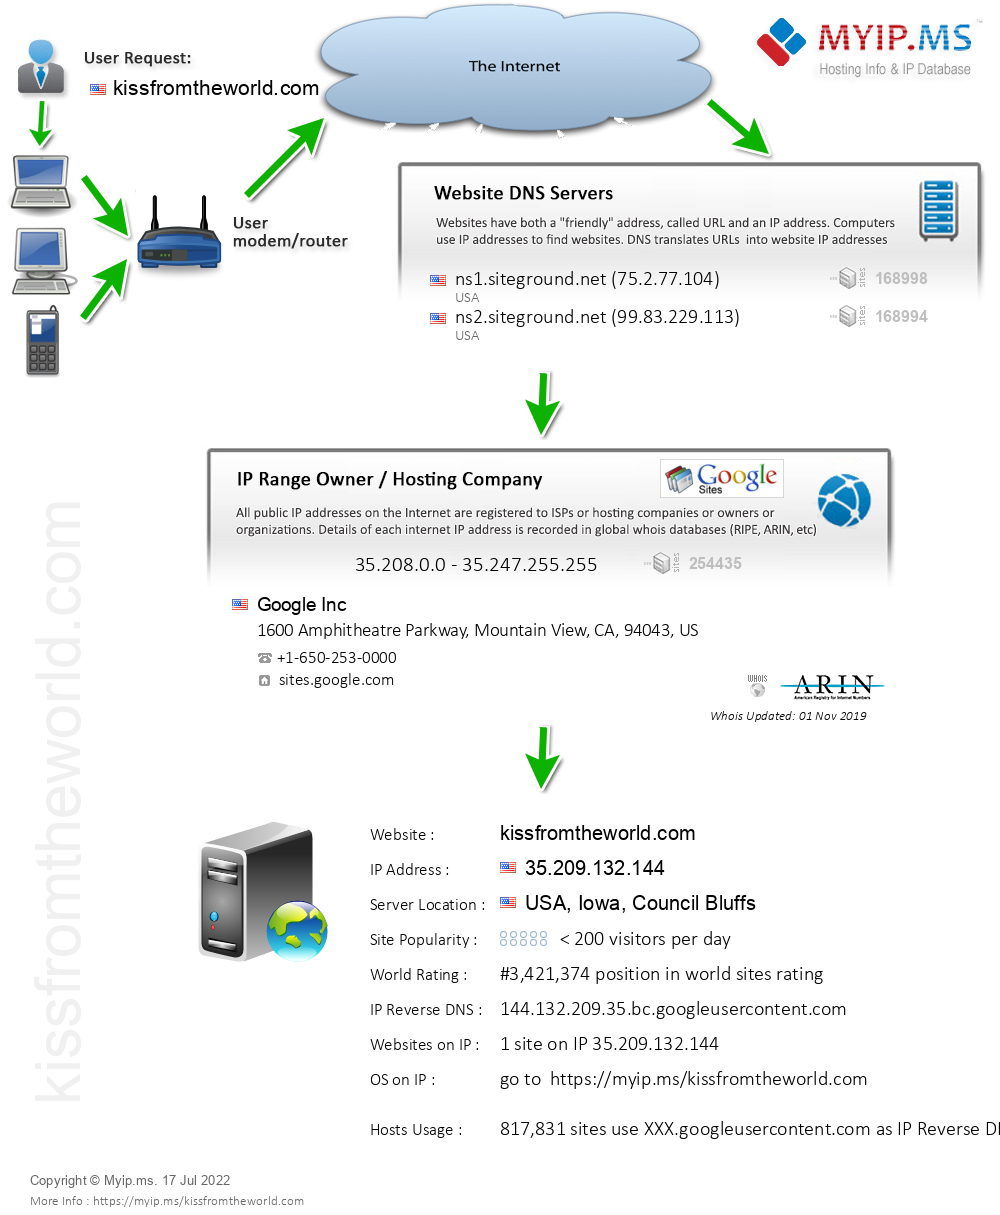 Kissfromtheworld.com - Website Hosting Visual IP Diagram